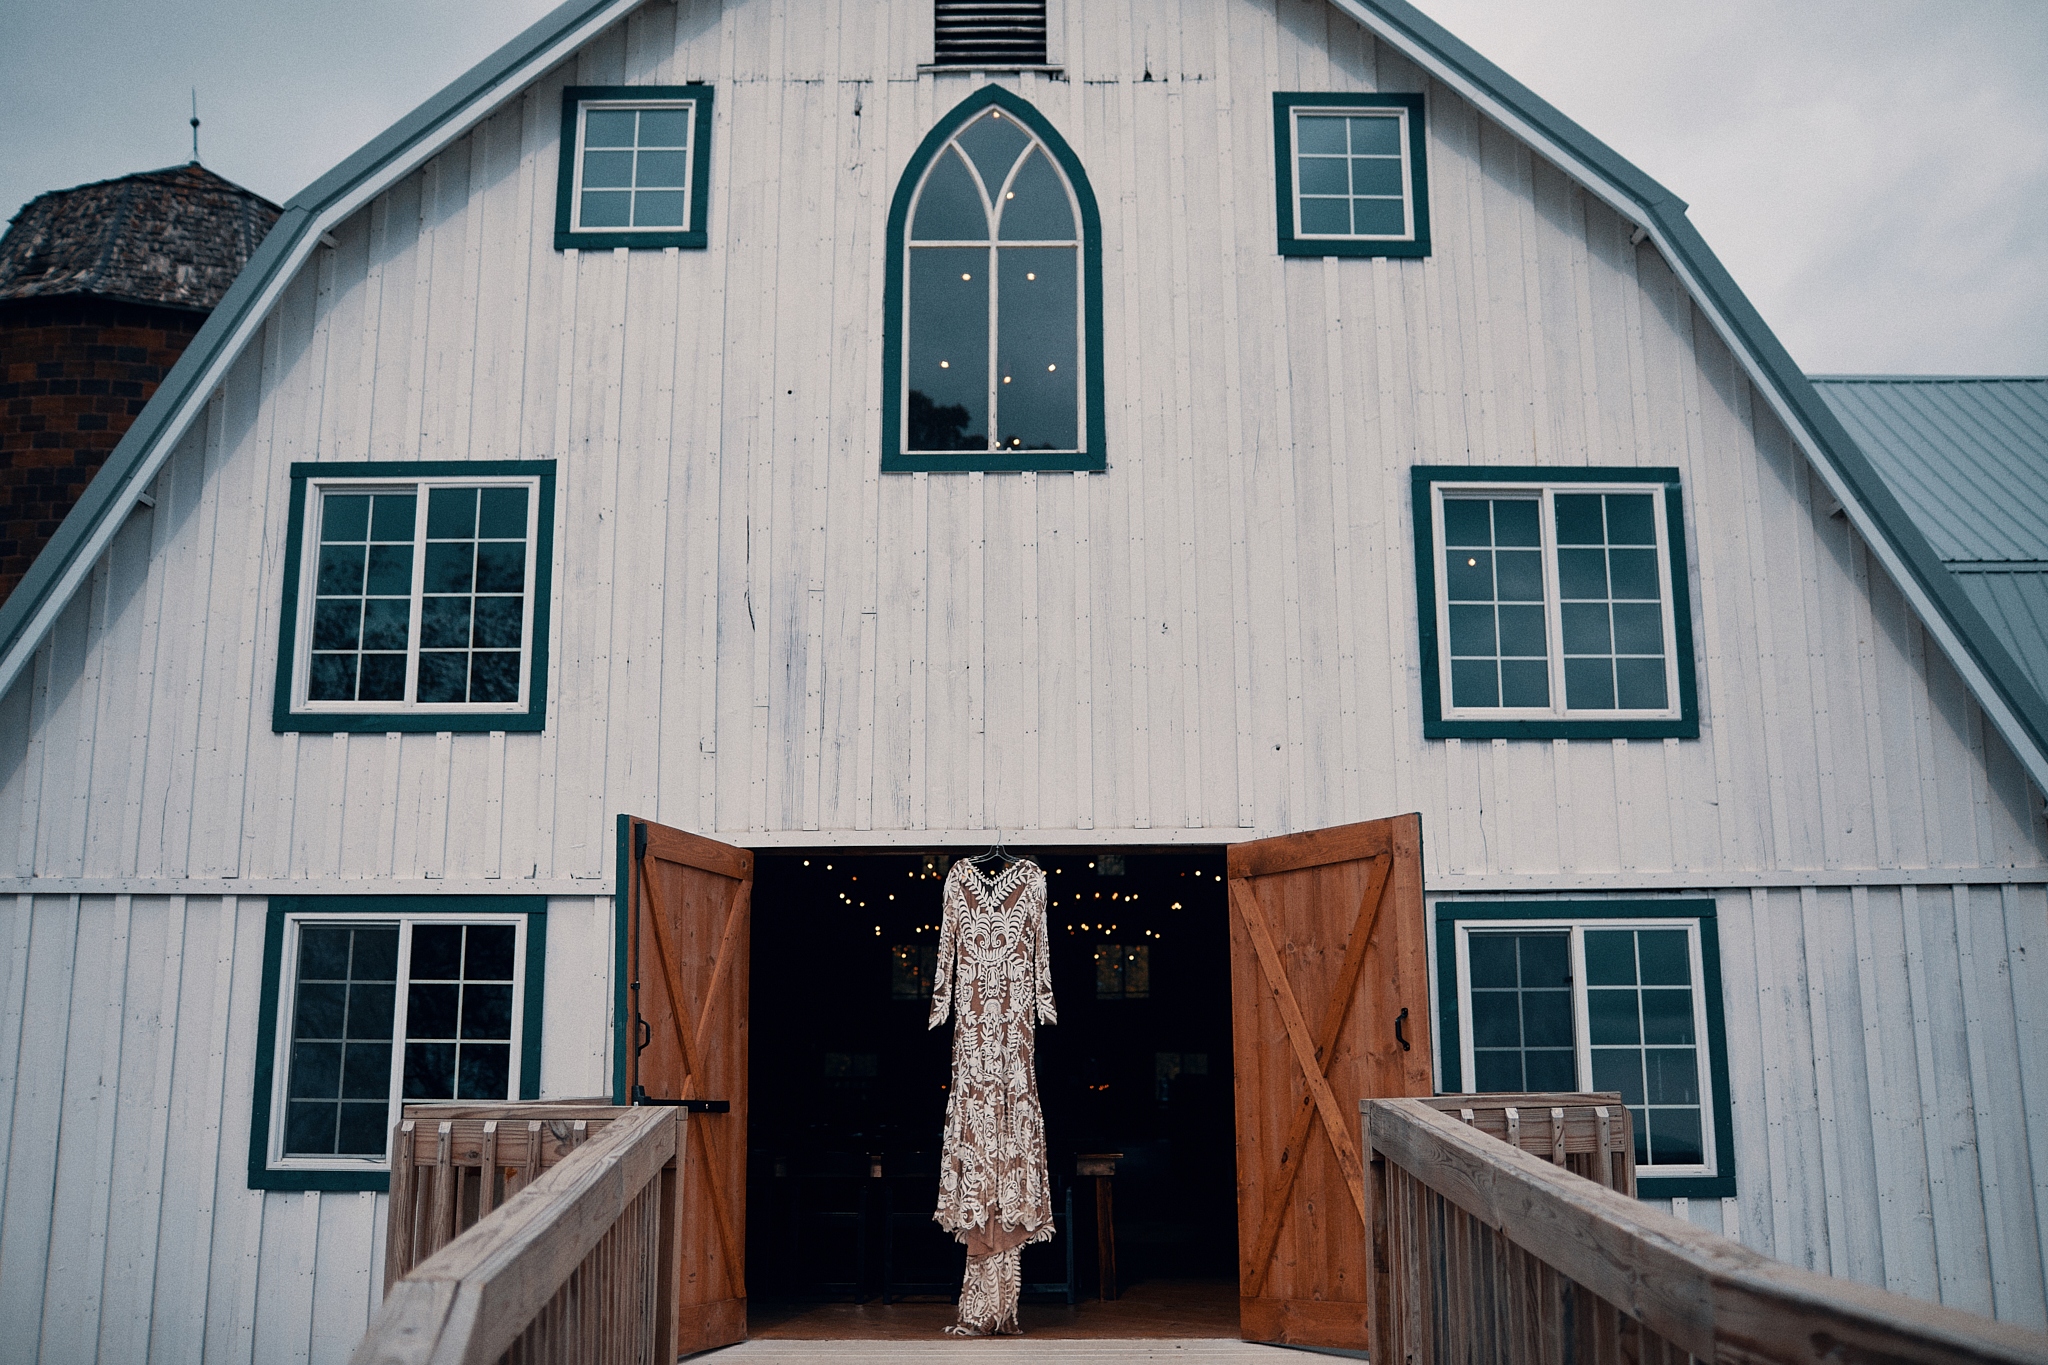 The_Bloom_Lake_Barn_Venue_Photography_By_High_End_Minneapolis_Brand_Photographer_Something_Candid_046.JPG